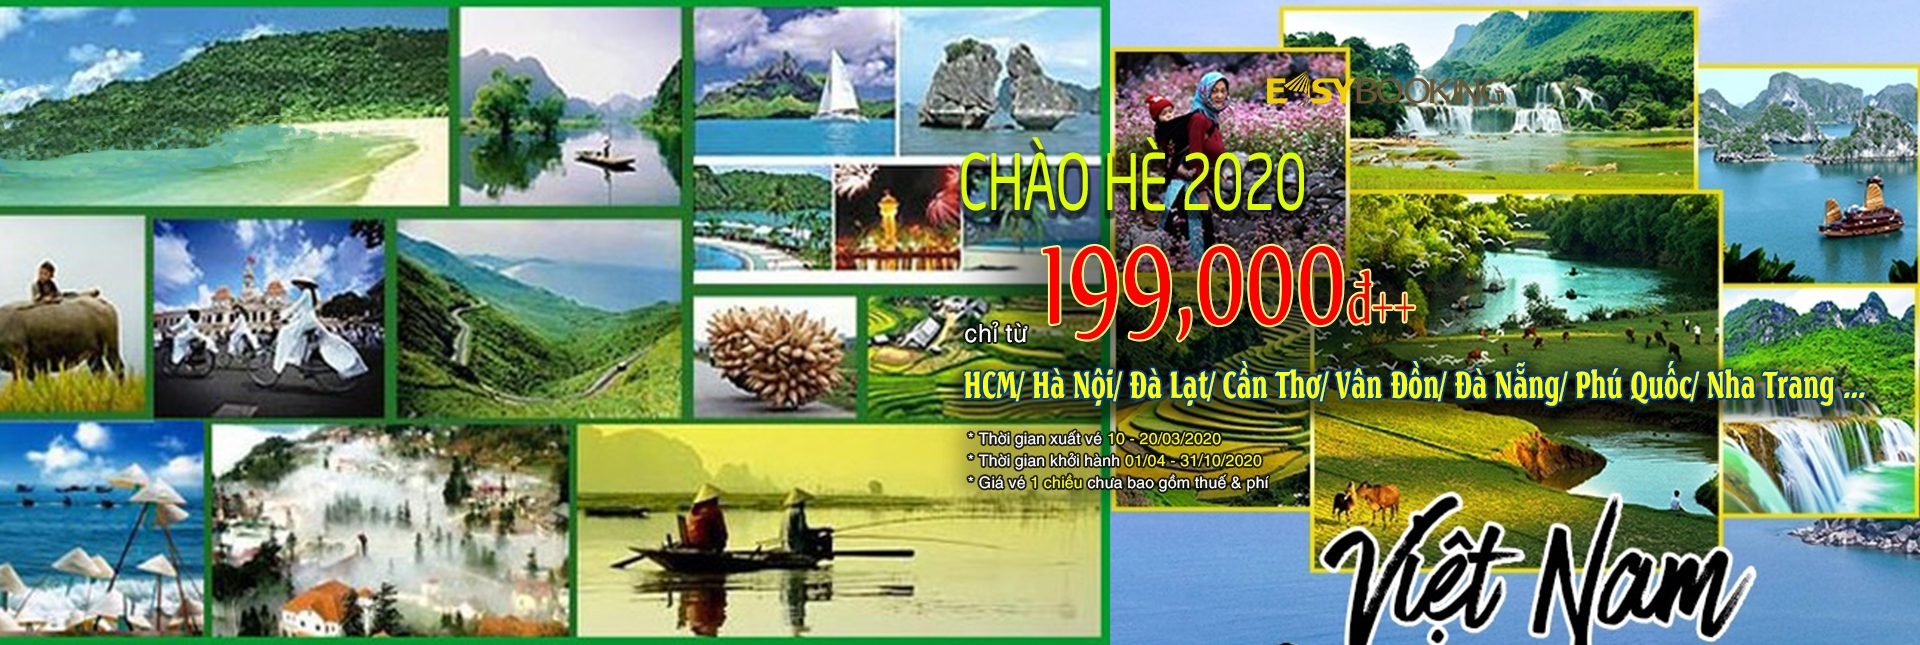 chao he 2020 vietnam airlines 03-2020 199k ve noi dia